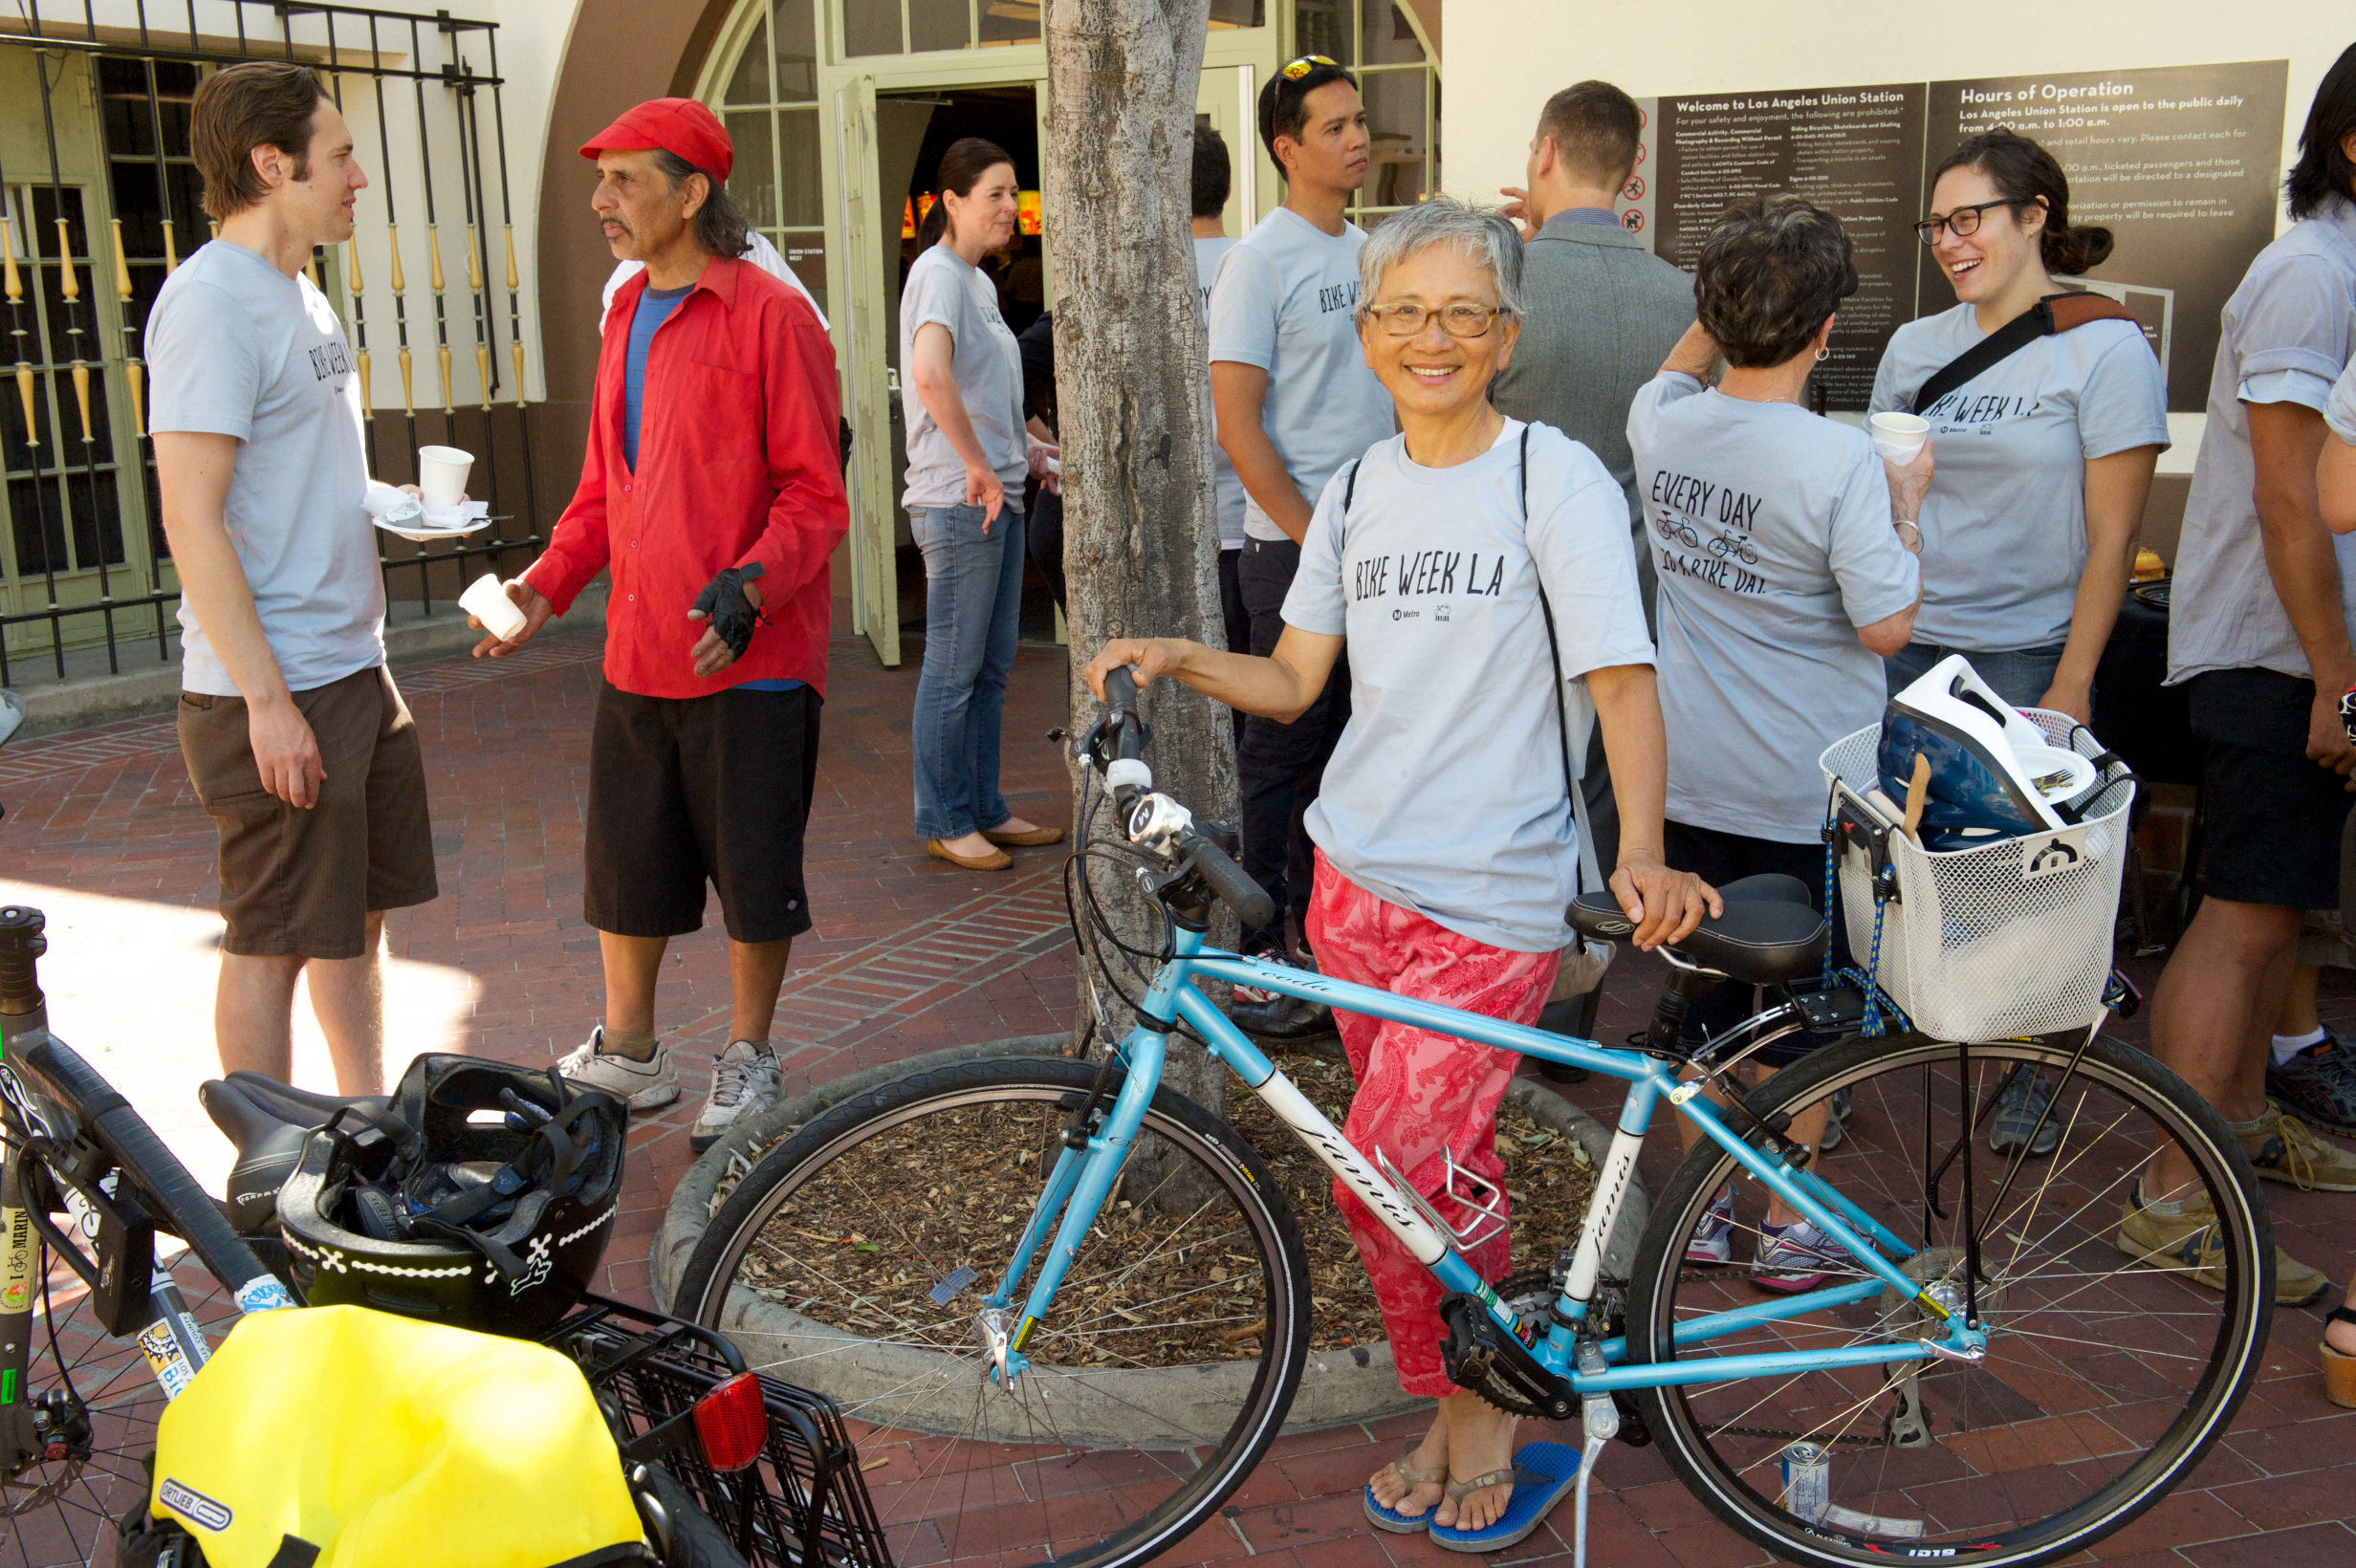 Swee, after finishing Bike Week LA's Guided Ride between Downtown LA and Boyle Heights.